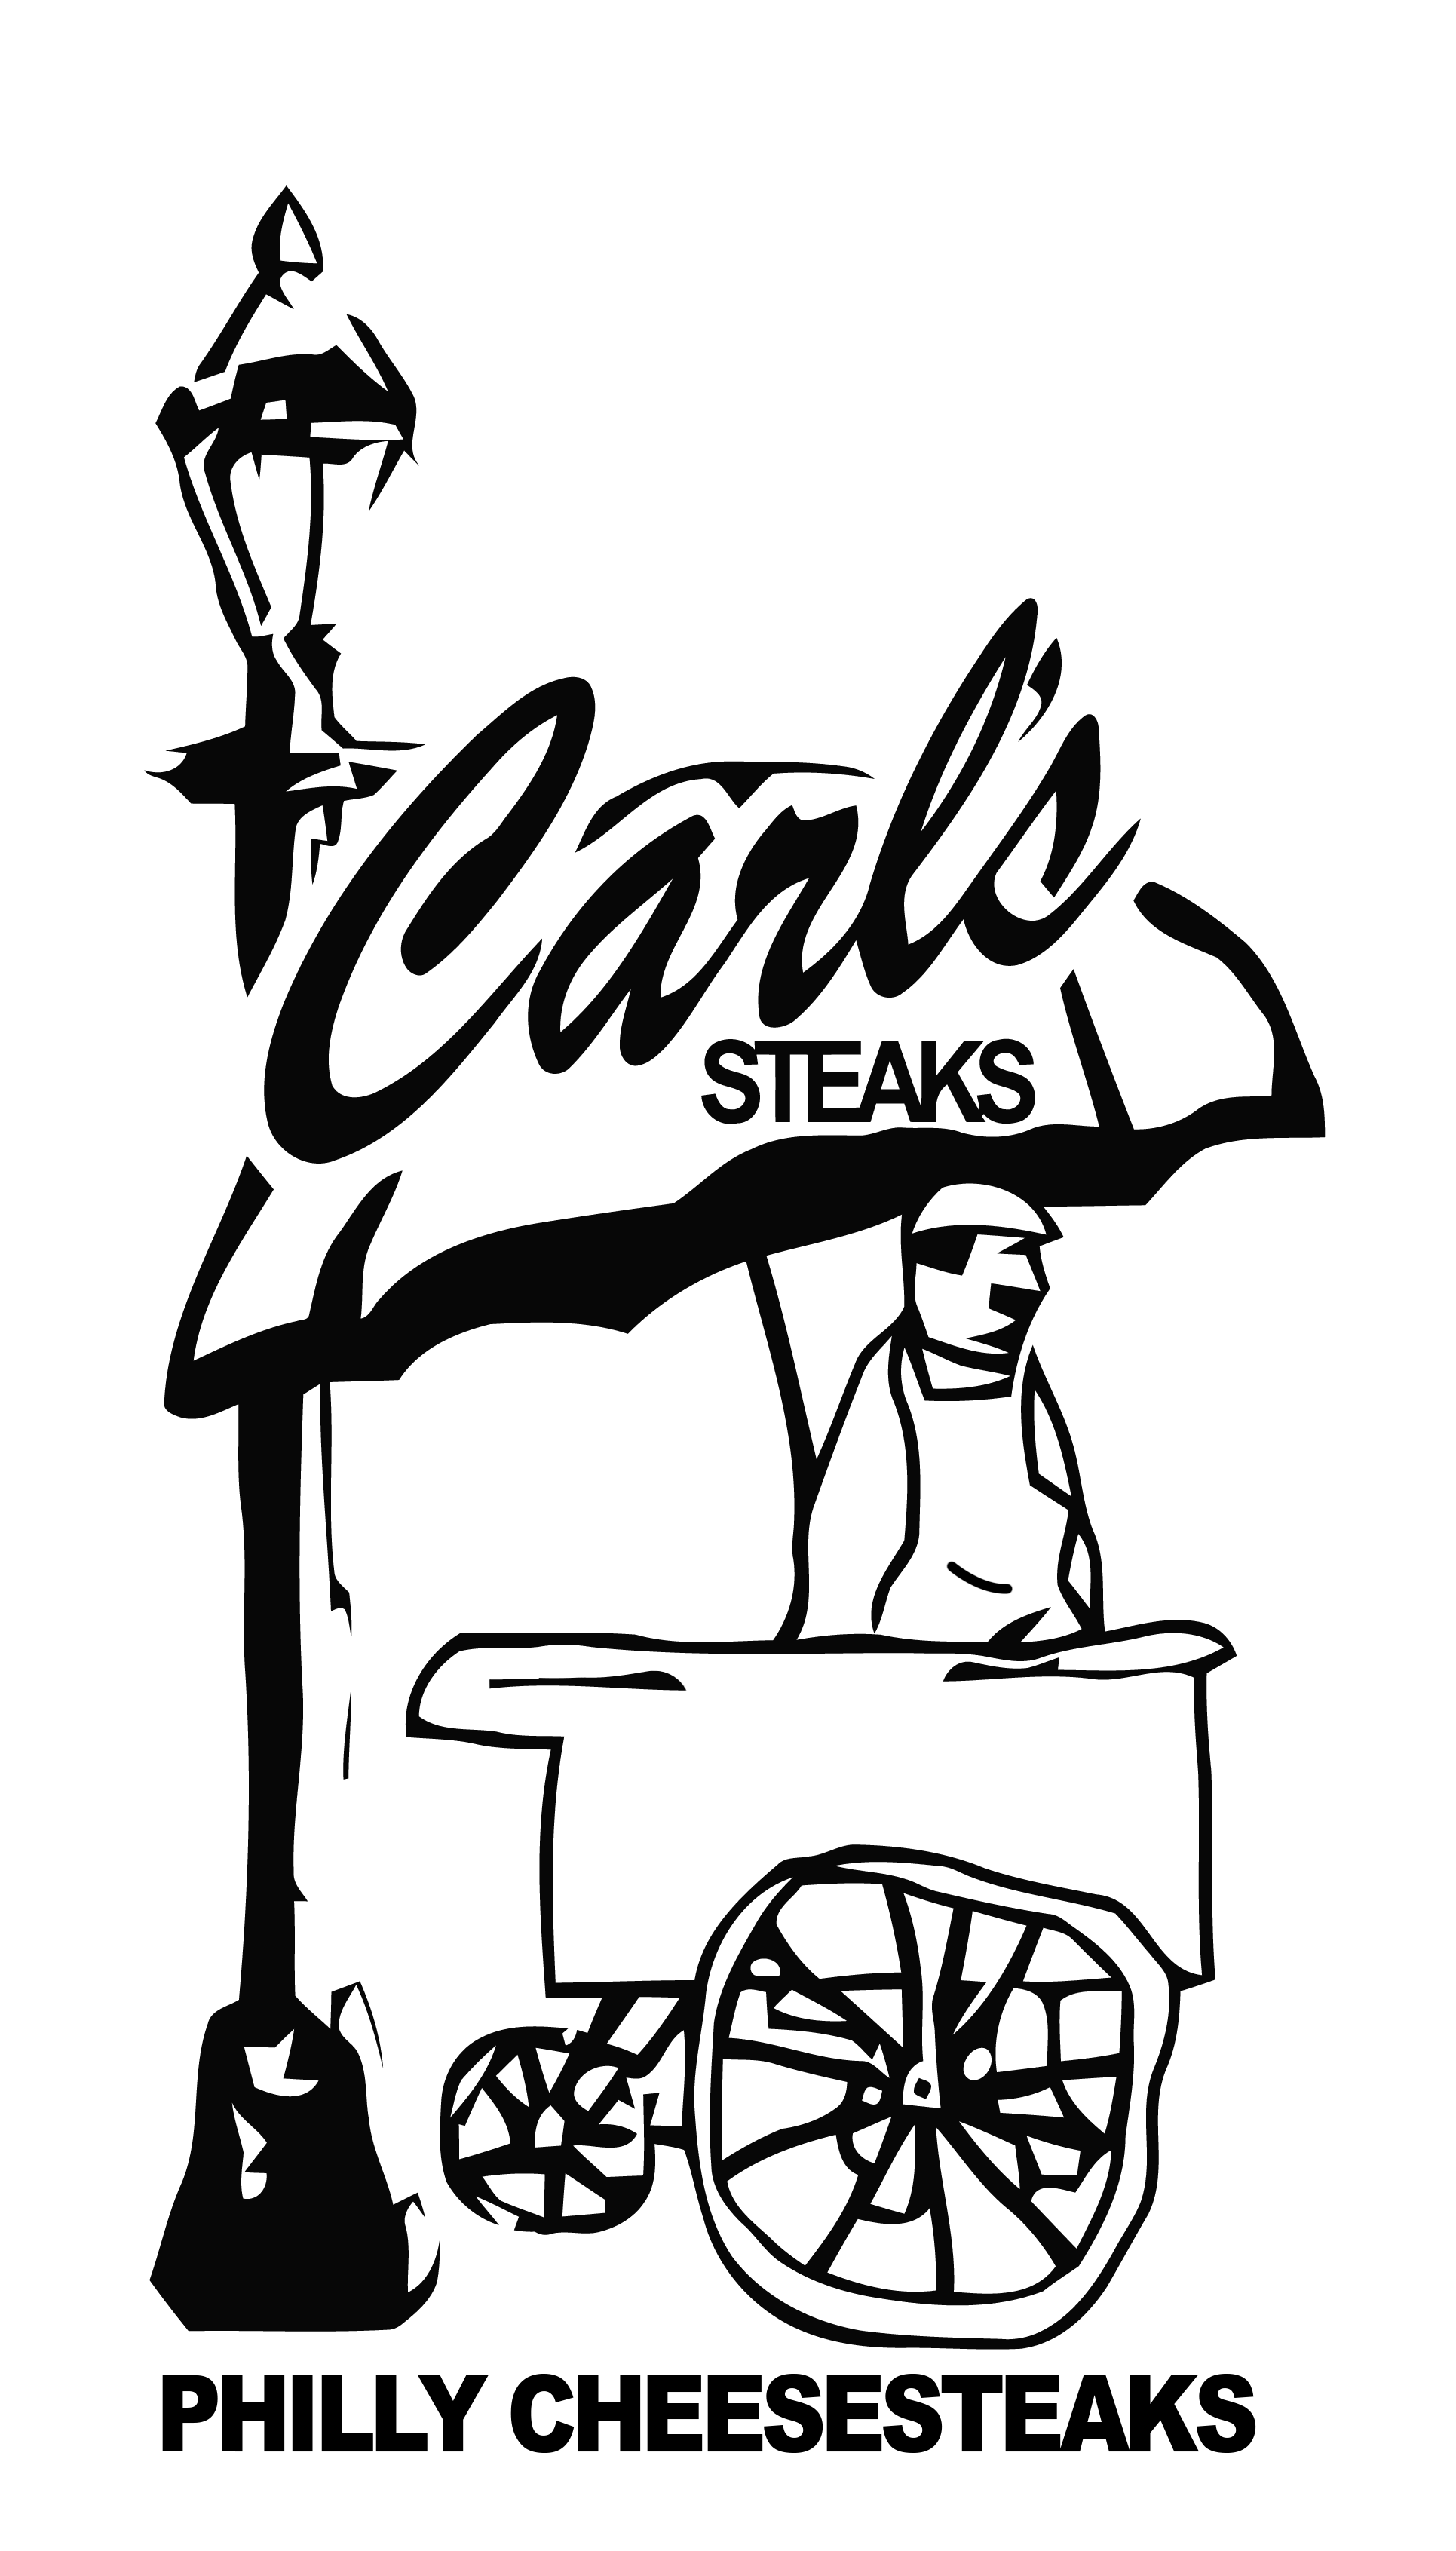 carls-steaks-logo